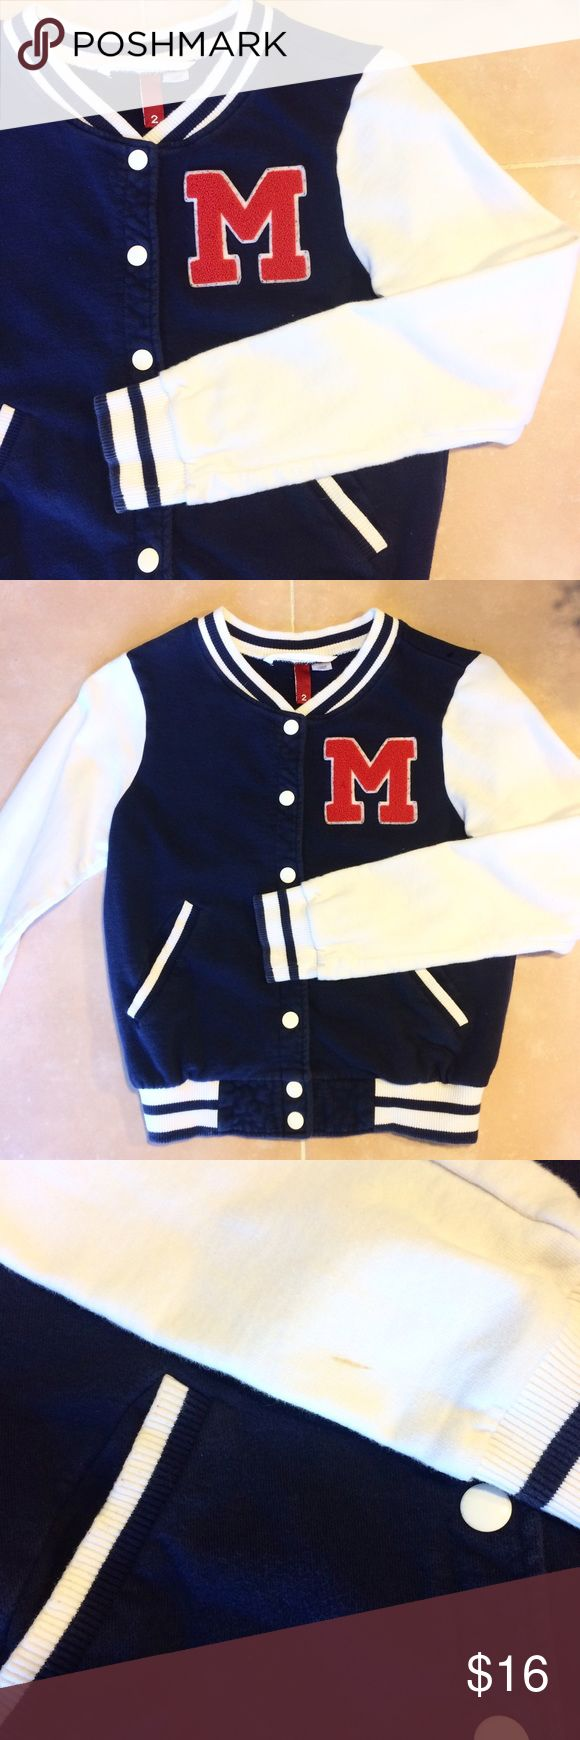 Varsity/Letterman Jacket Navy Blue varsity/letterman jacket from H&M. Obviously preloved, but the only two flaws found are a brown line on the right hand sleeve and a small tear on the left shoulder. Otherwise in good condition!   Bundle or make an offer 😘 Feel free to ask questions! H&M Jackets & Coats